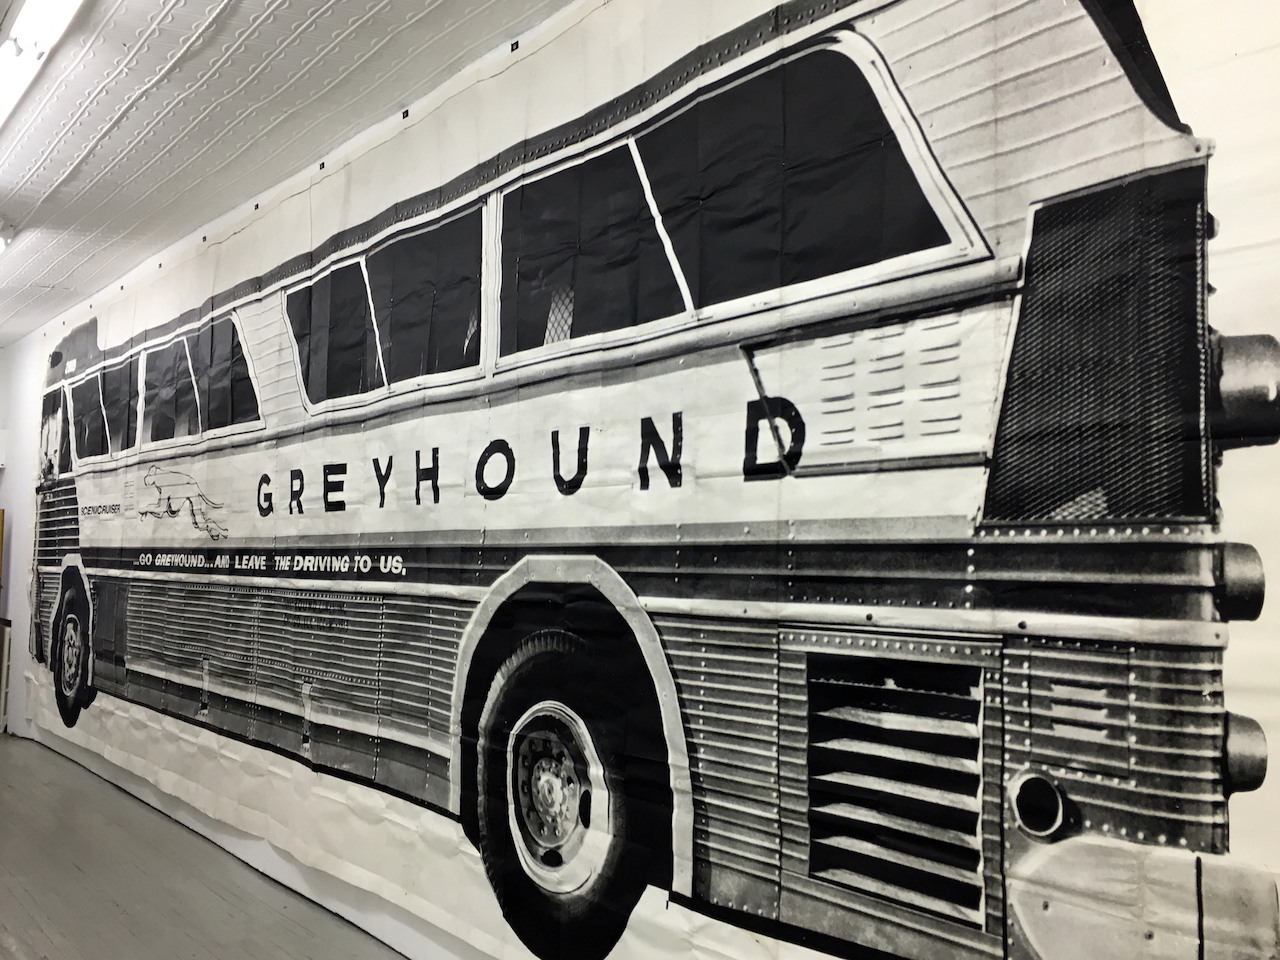 A LifeSize 1967 Photograph of a Greyhound Bus Drives into